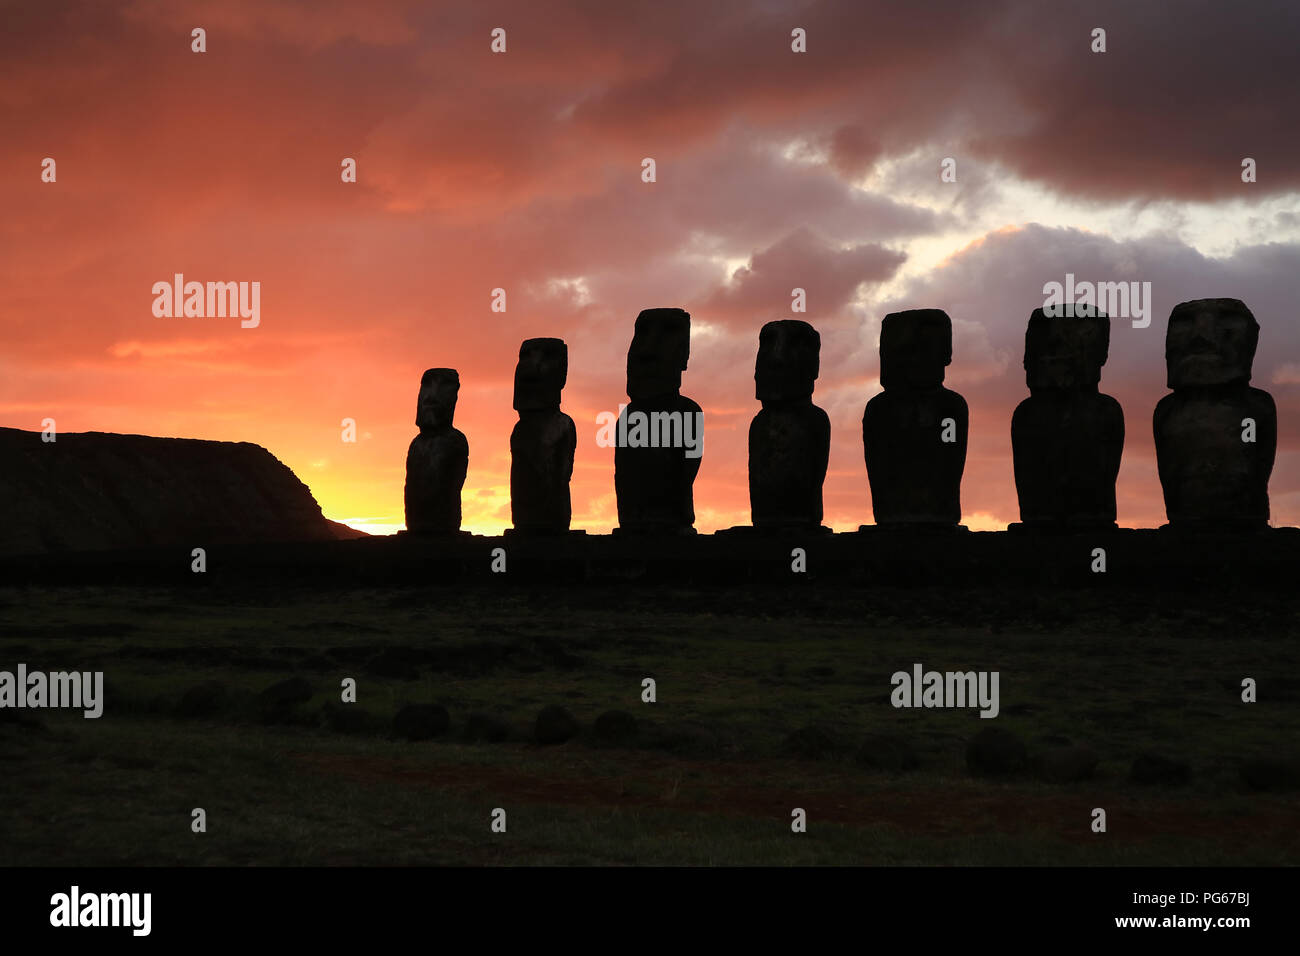 Silhouette of huge Moai statues of Ahu Tongariki against beautiful sunrise cloudy sky, Archaeological site in Easter Island, Chile - Stock Image